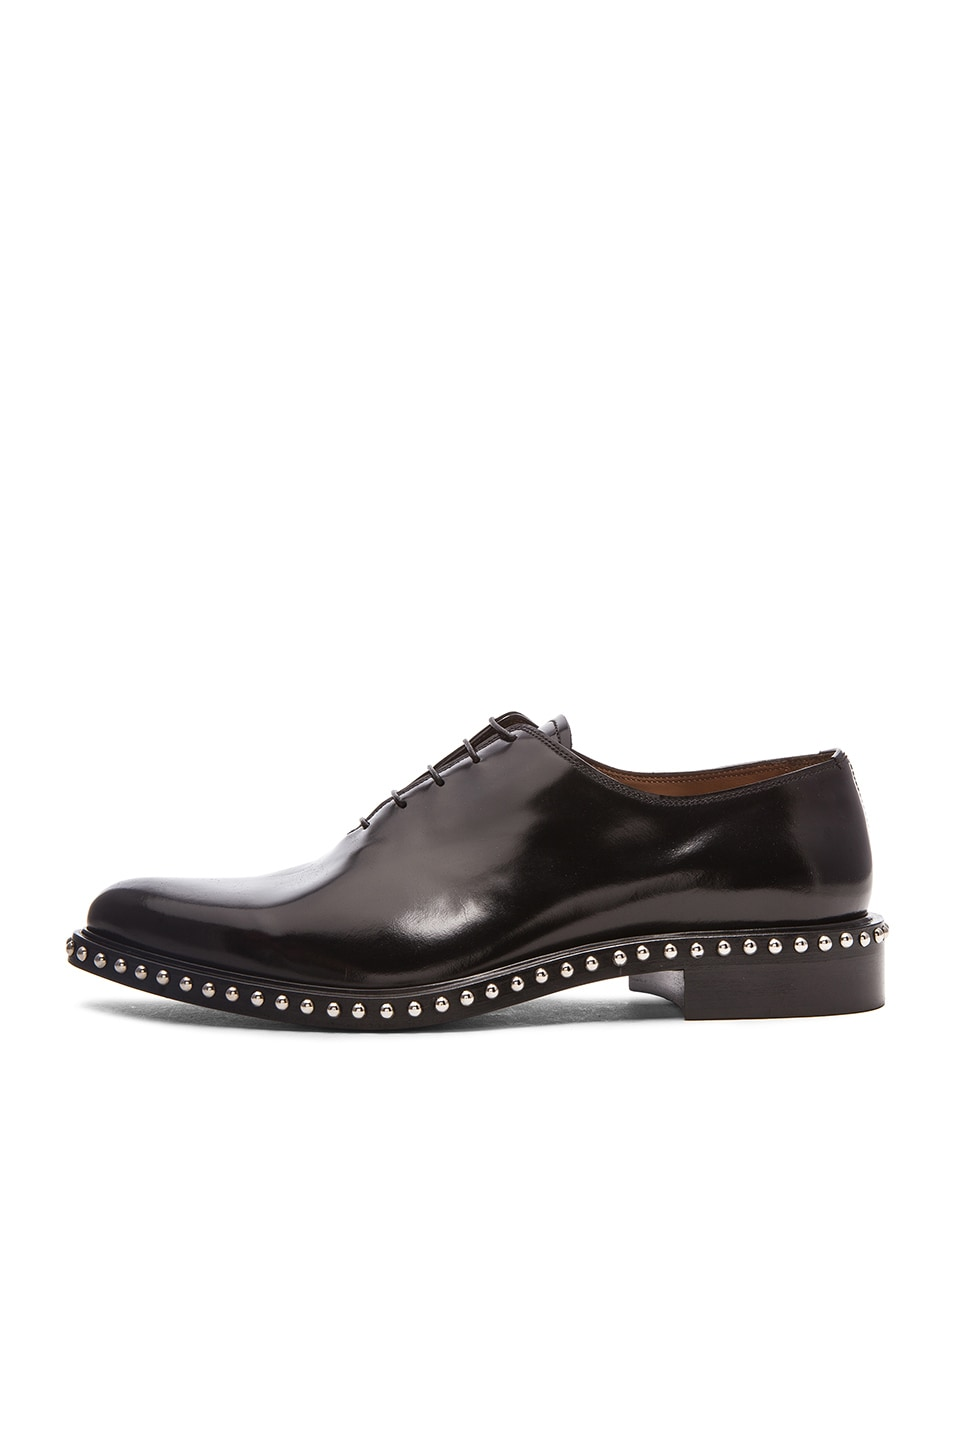 Image 5 of Givenchy Richel Studded Leather Dress Shoes in Black 4f83a6cf53b0